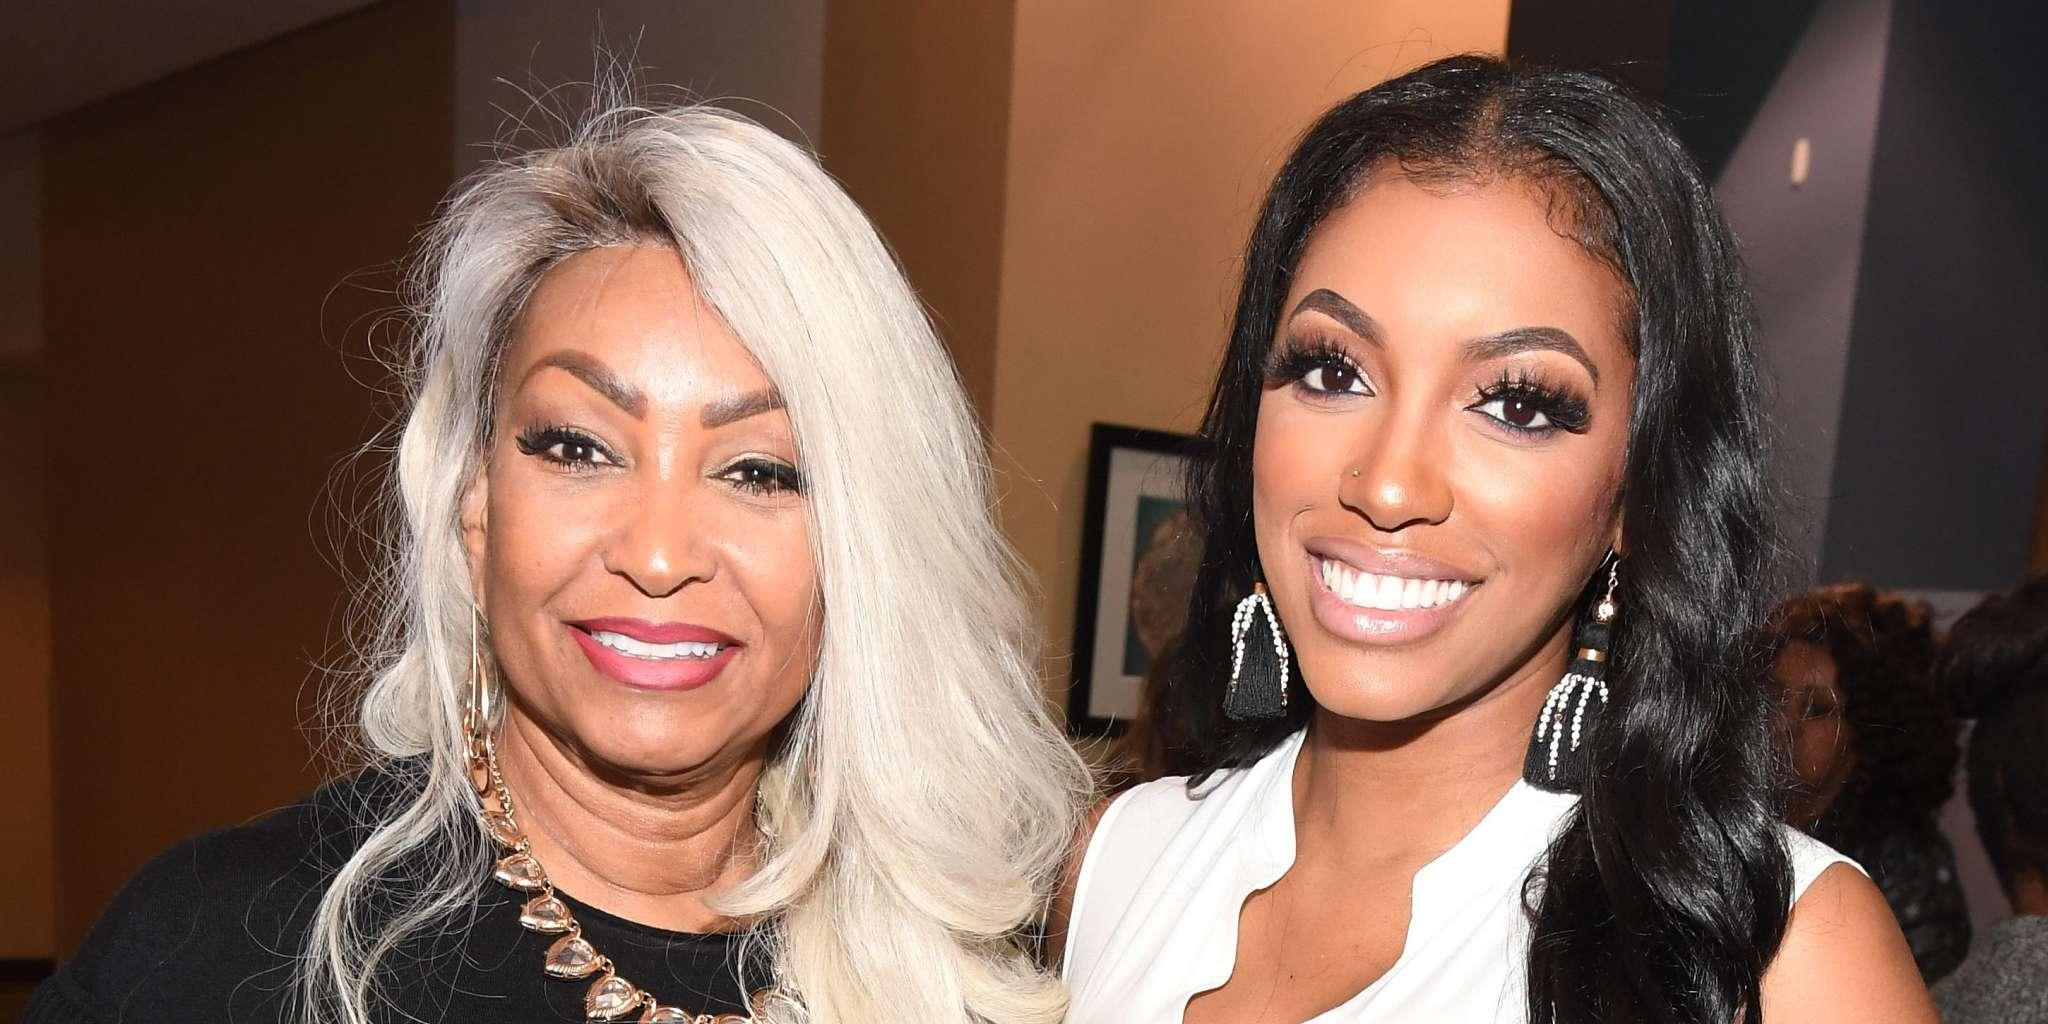 Porsha Williams Makes Her Mom Cry Tears Of Joy With This Surprise - Check Out Her Video